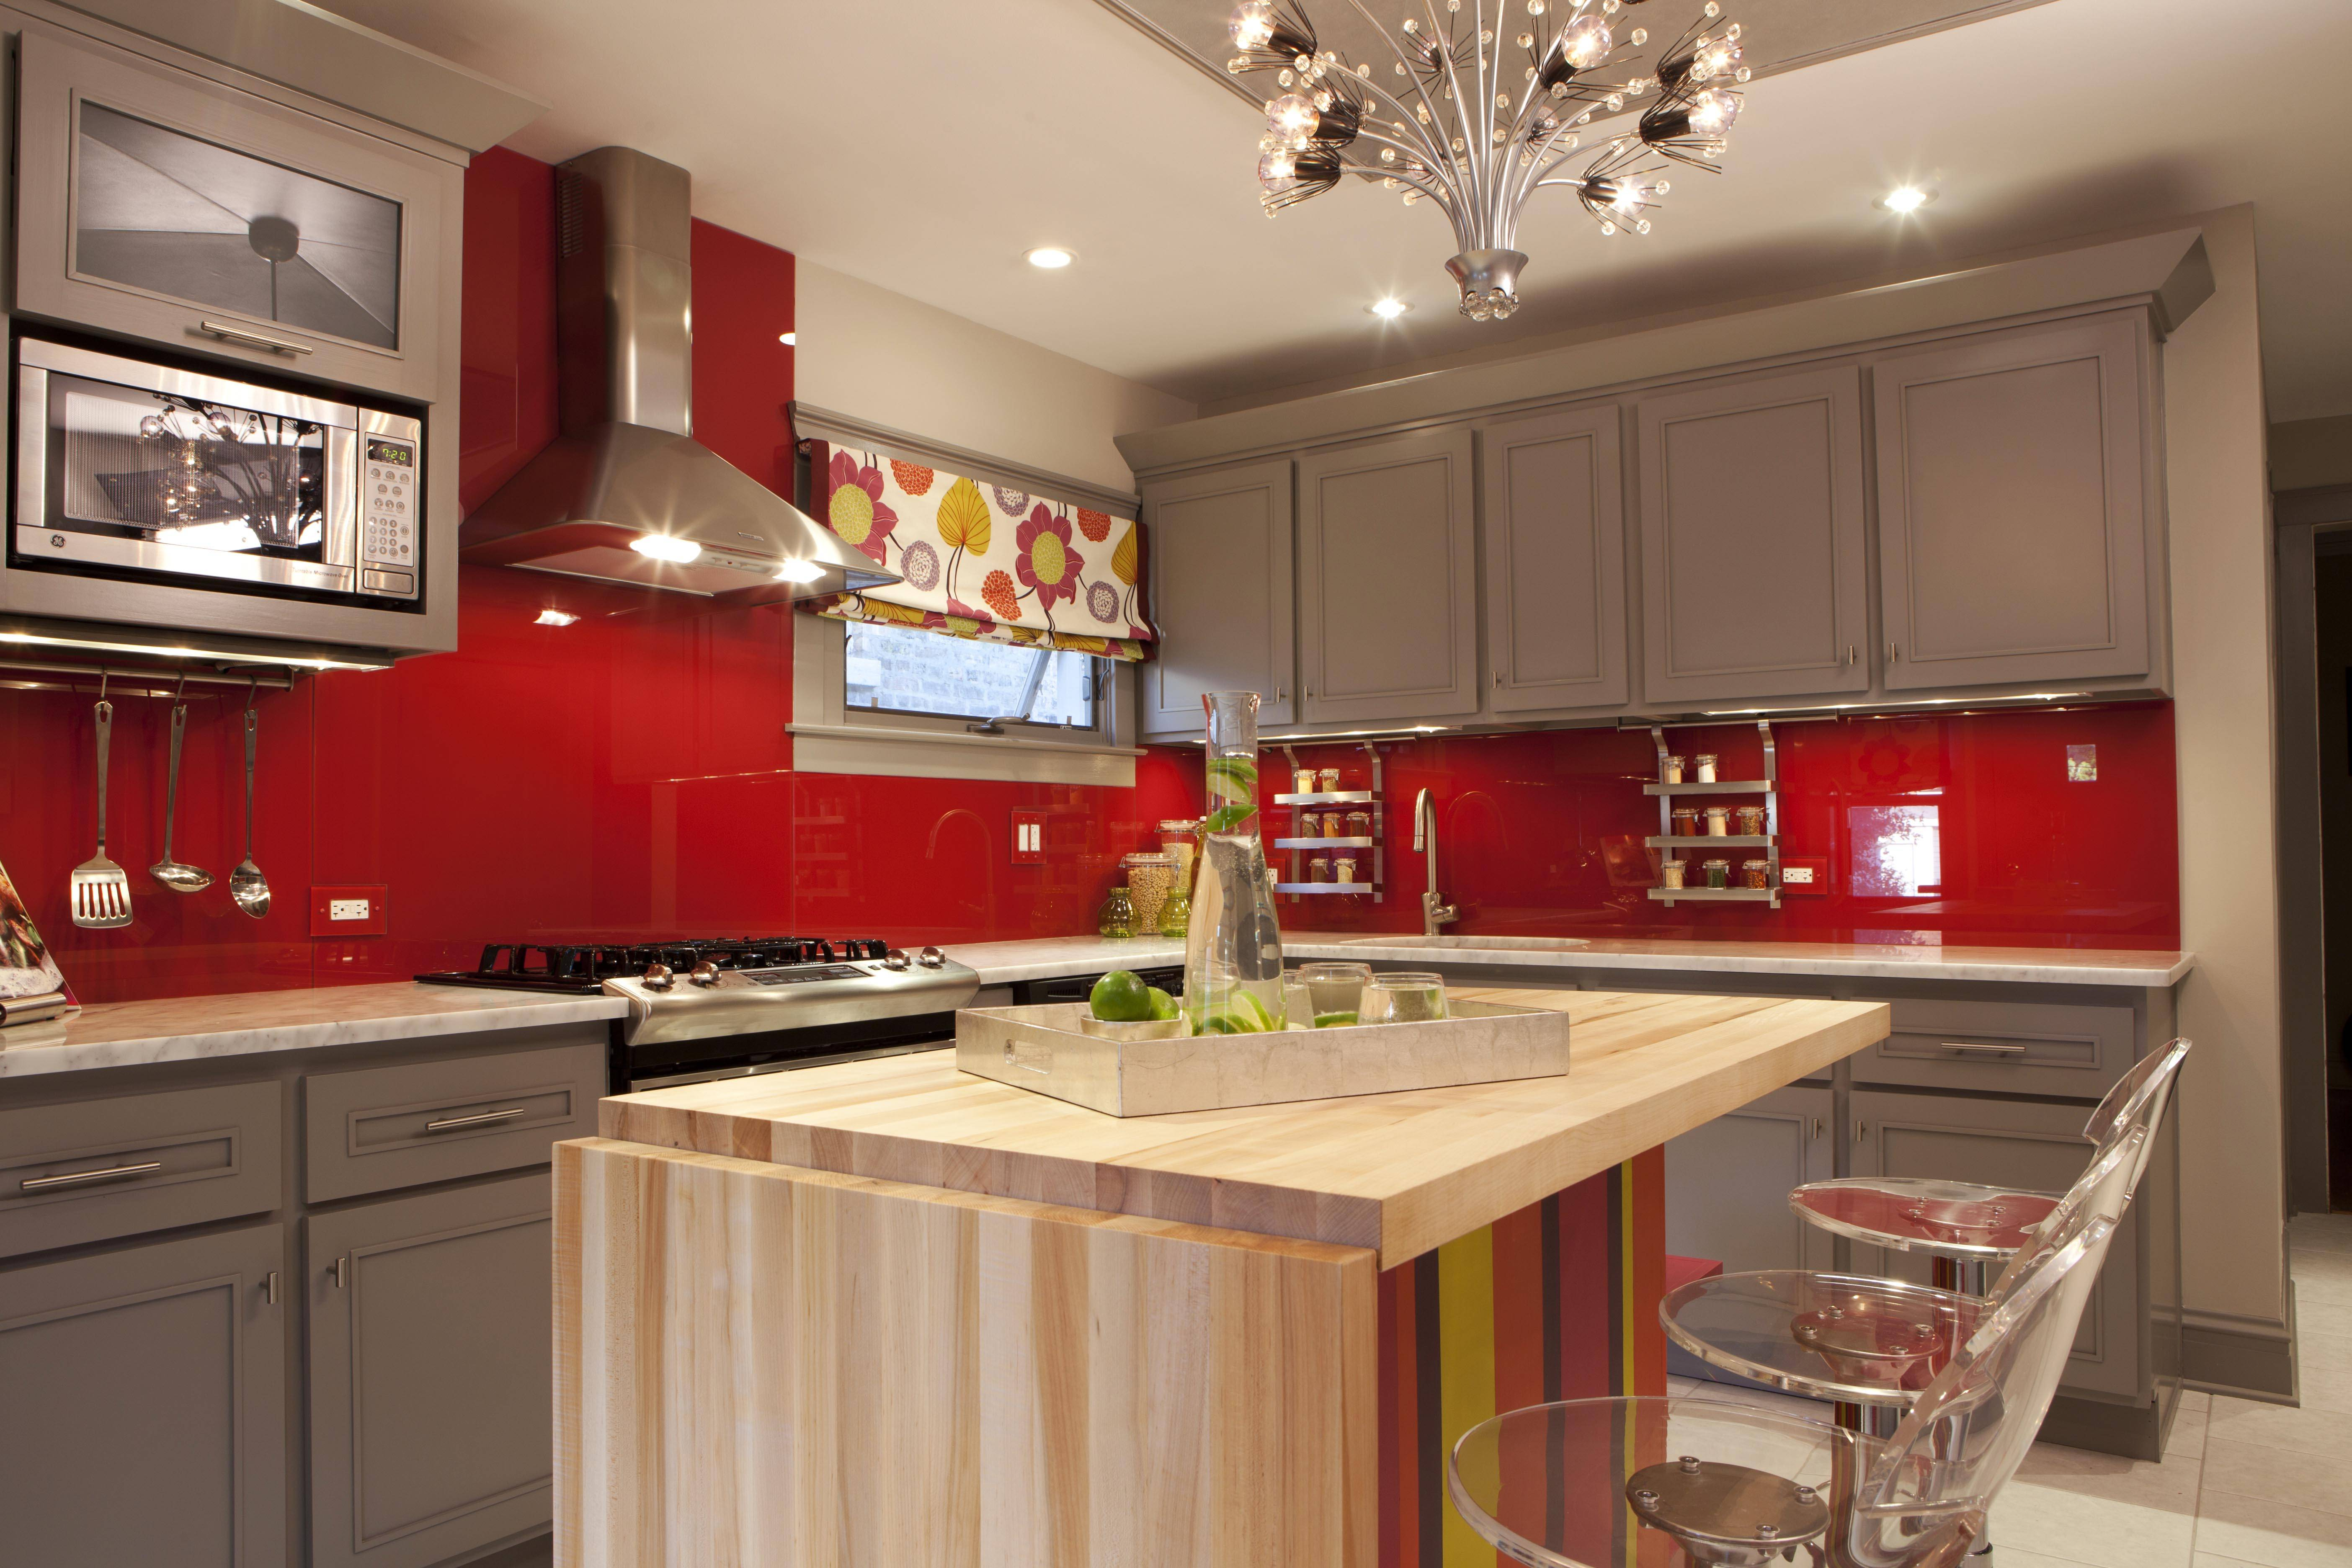 Meg Caswell, designer and host of HGTV's Great Rooms, painted the walls red then added a clear glass cover to create a chic, vibrant backsplash in this kitchen. Elements like this, as well as stools, countertop appliances and textiles are great ways to inject color into a kitchen that may have more traditional bones for a look that's unexpected and modern.